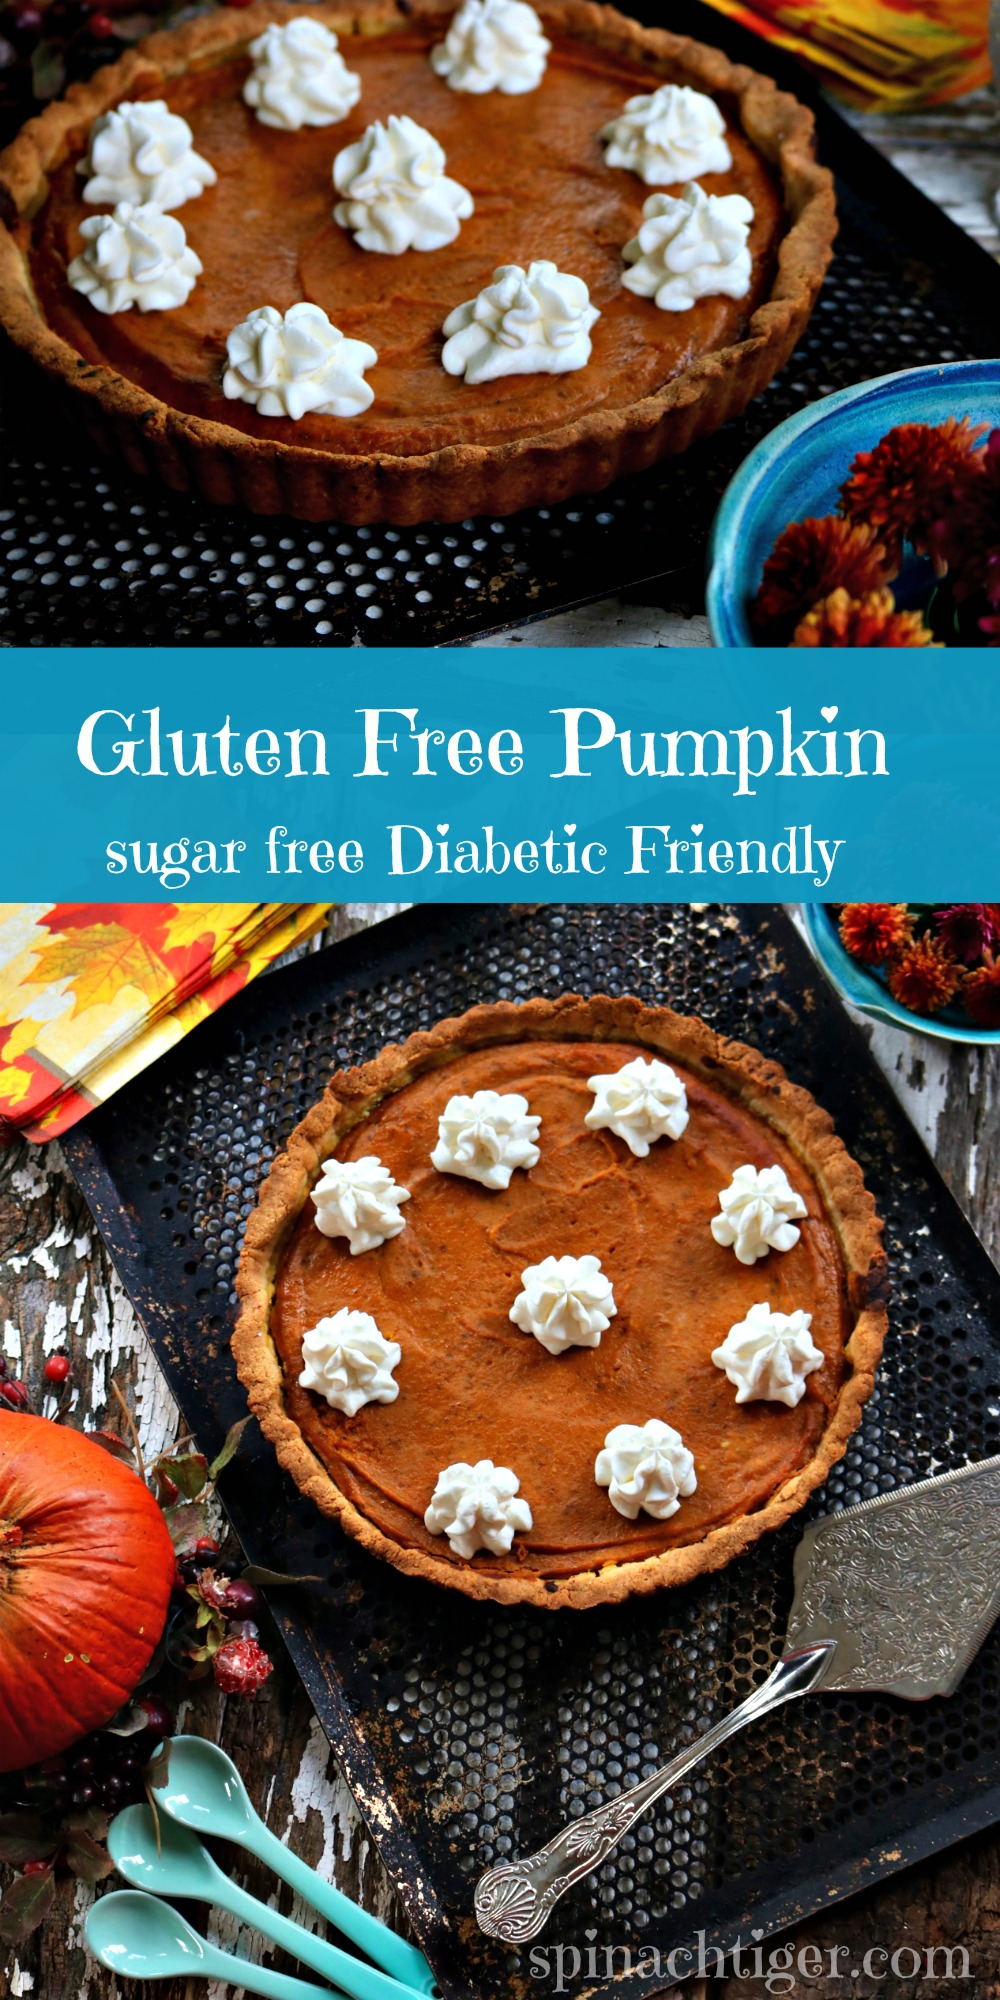 Gluten Free Pumpkin Pie Low Carb Pumpkin PIe from Spinach Tiger